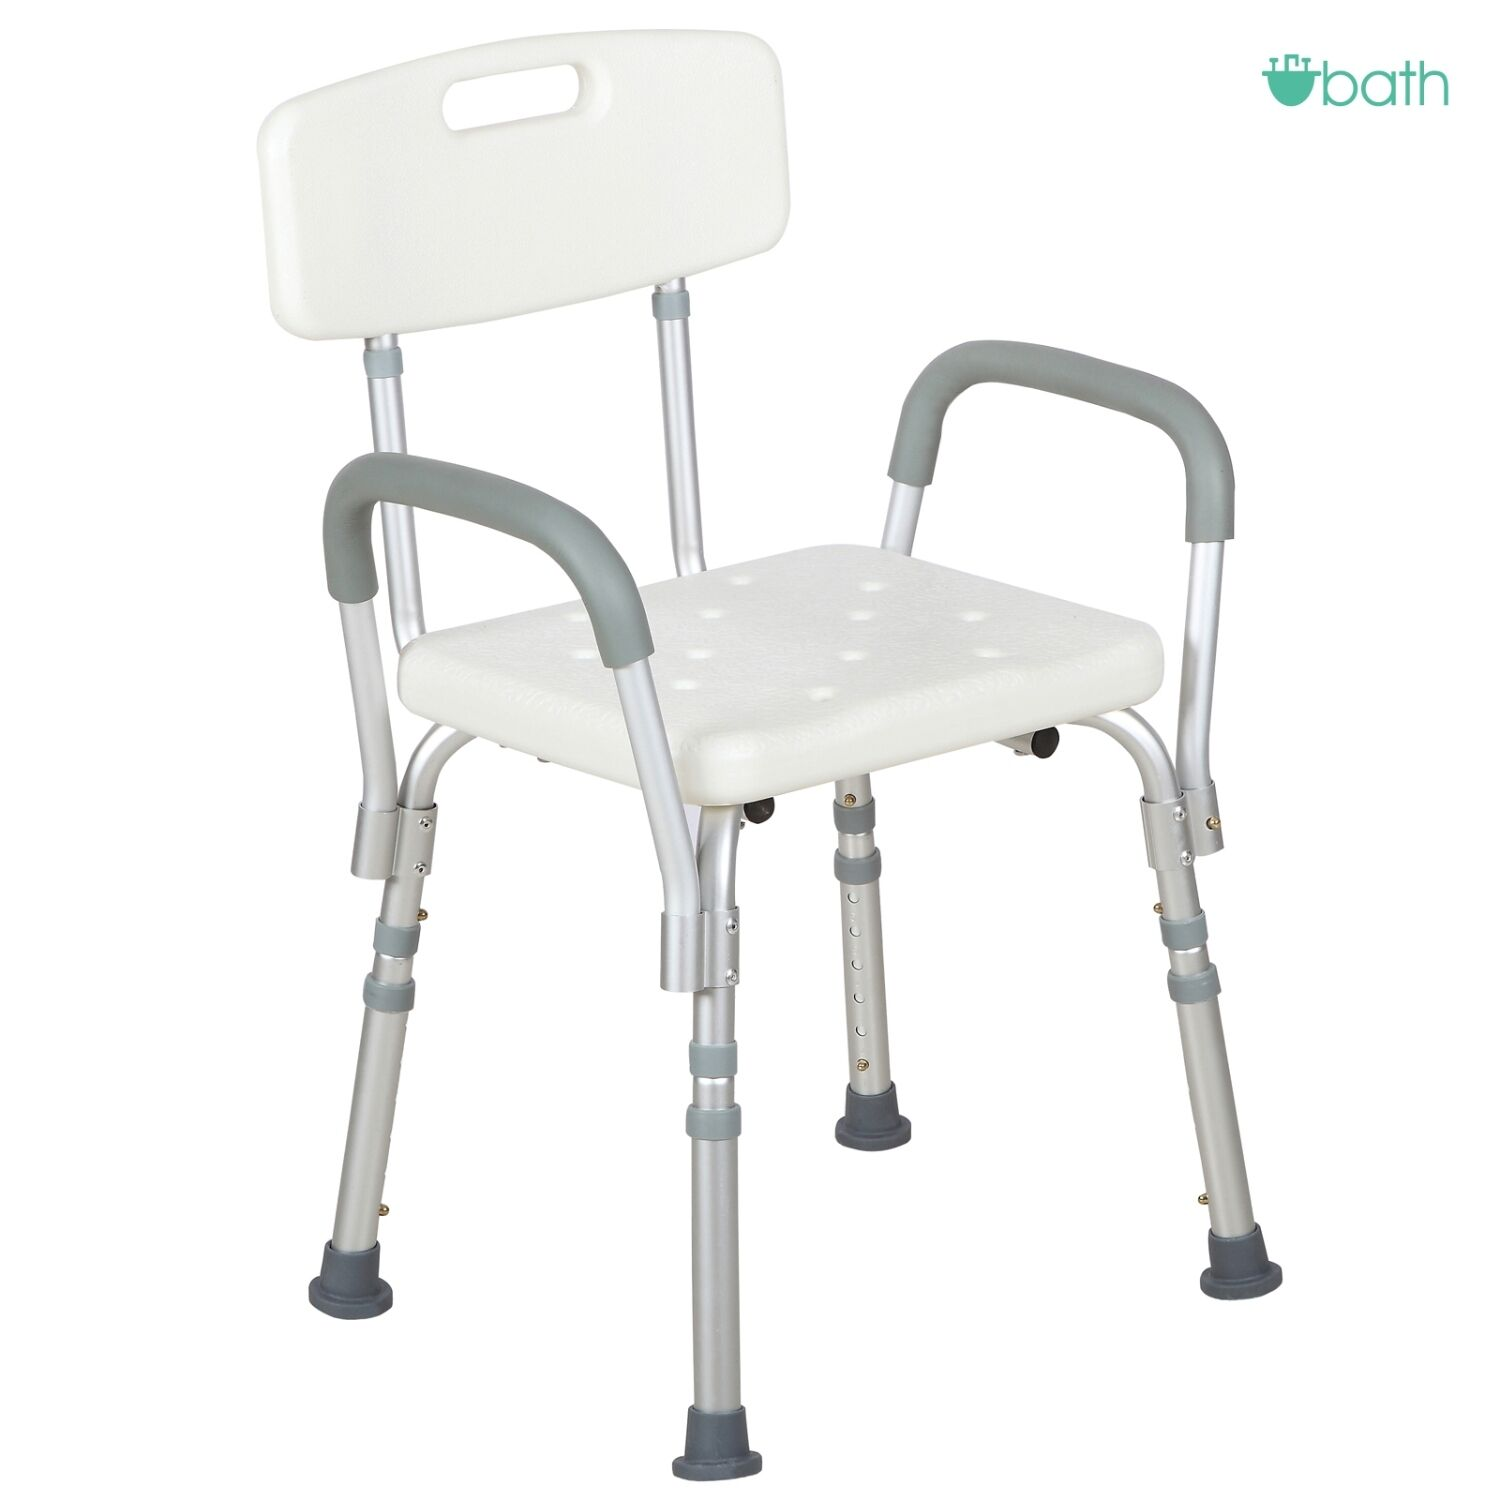 Details About White Medical Bath Shower Chair Adjustable Bathtub Bench Stool Seat Armrest Back